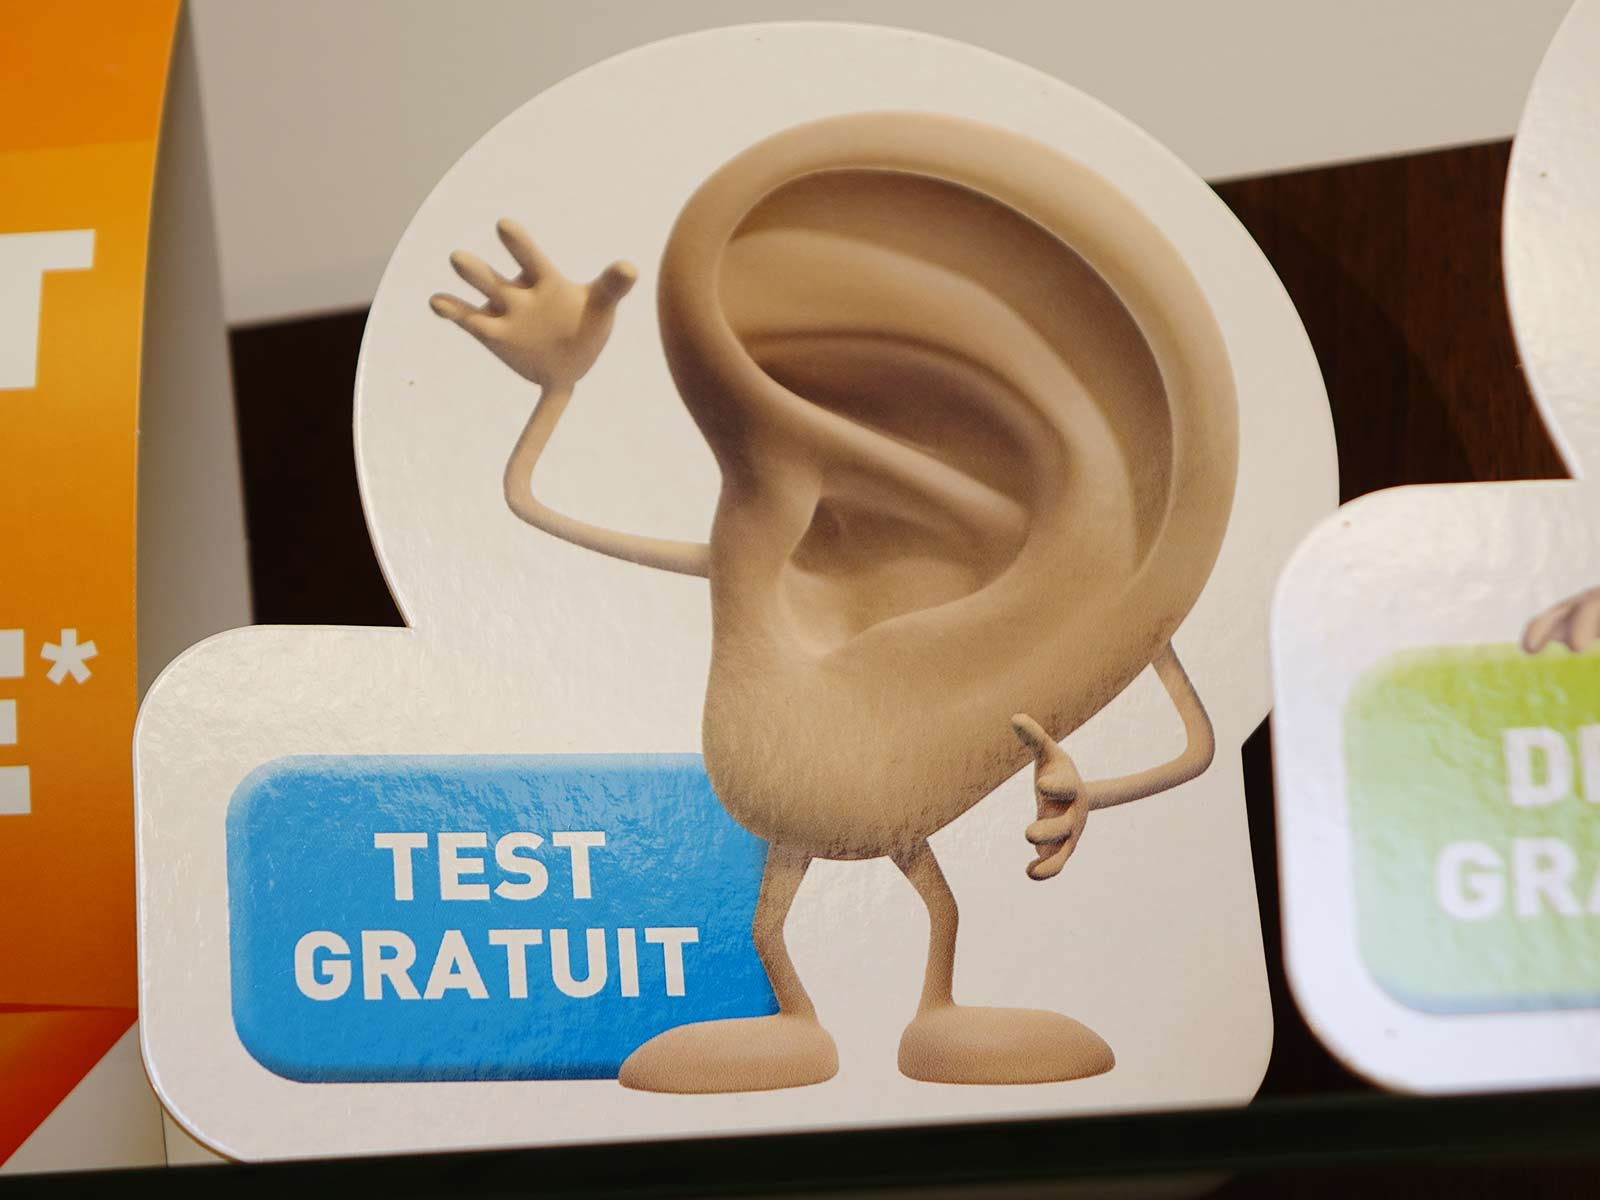 Test auditif gratuit